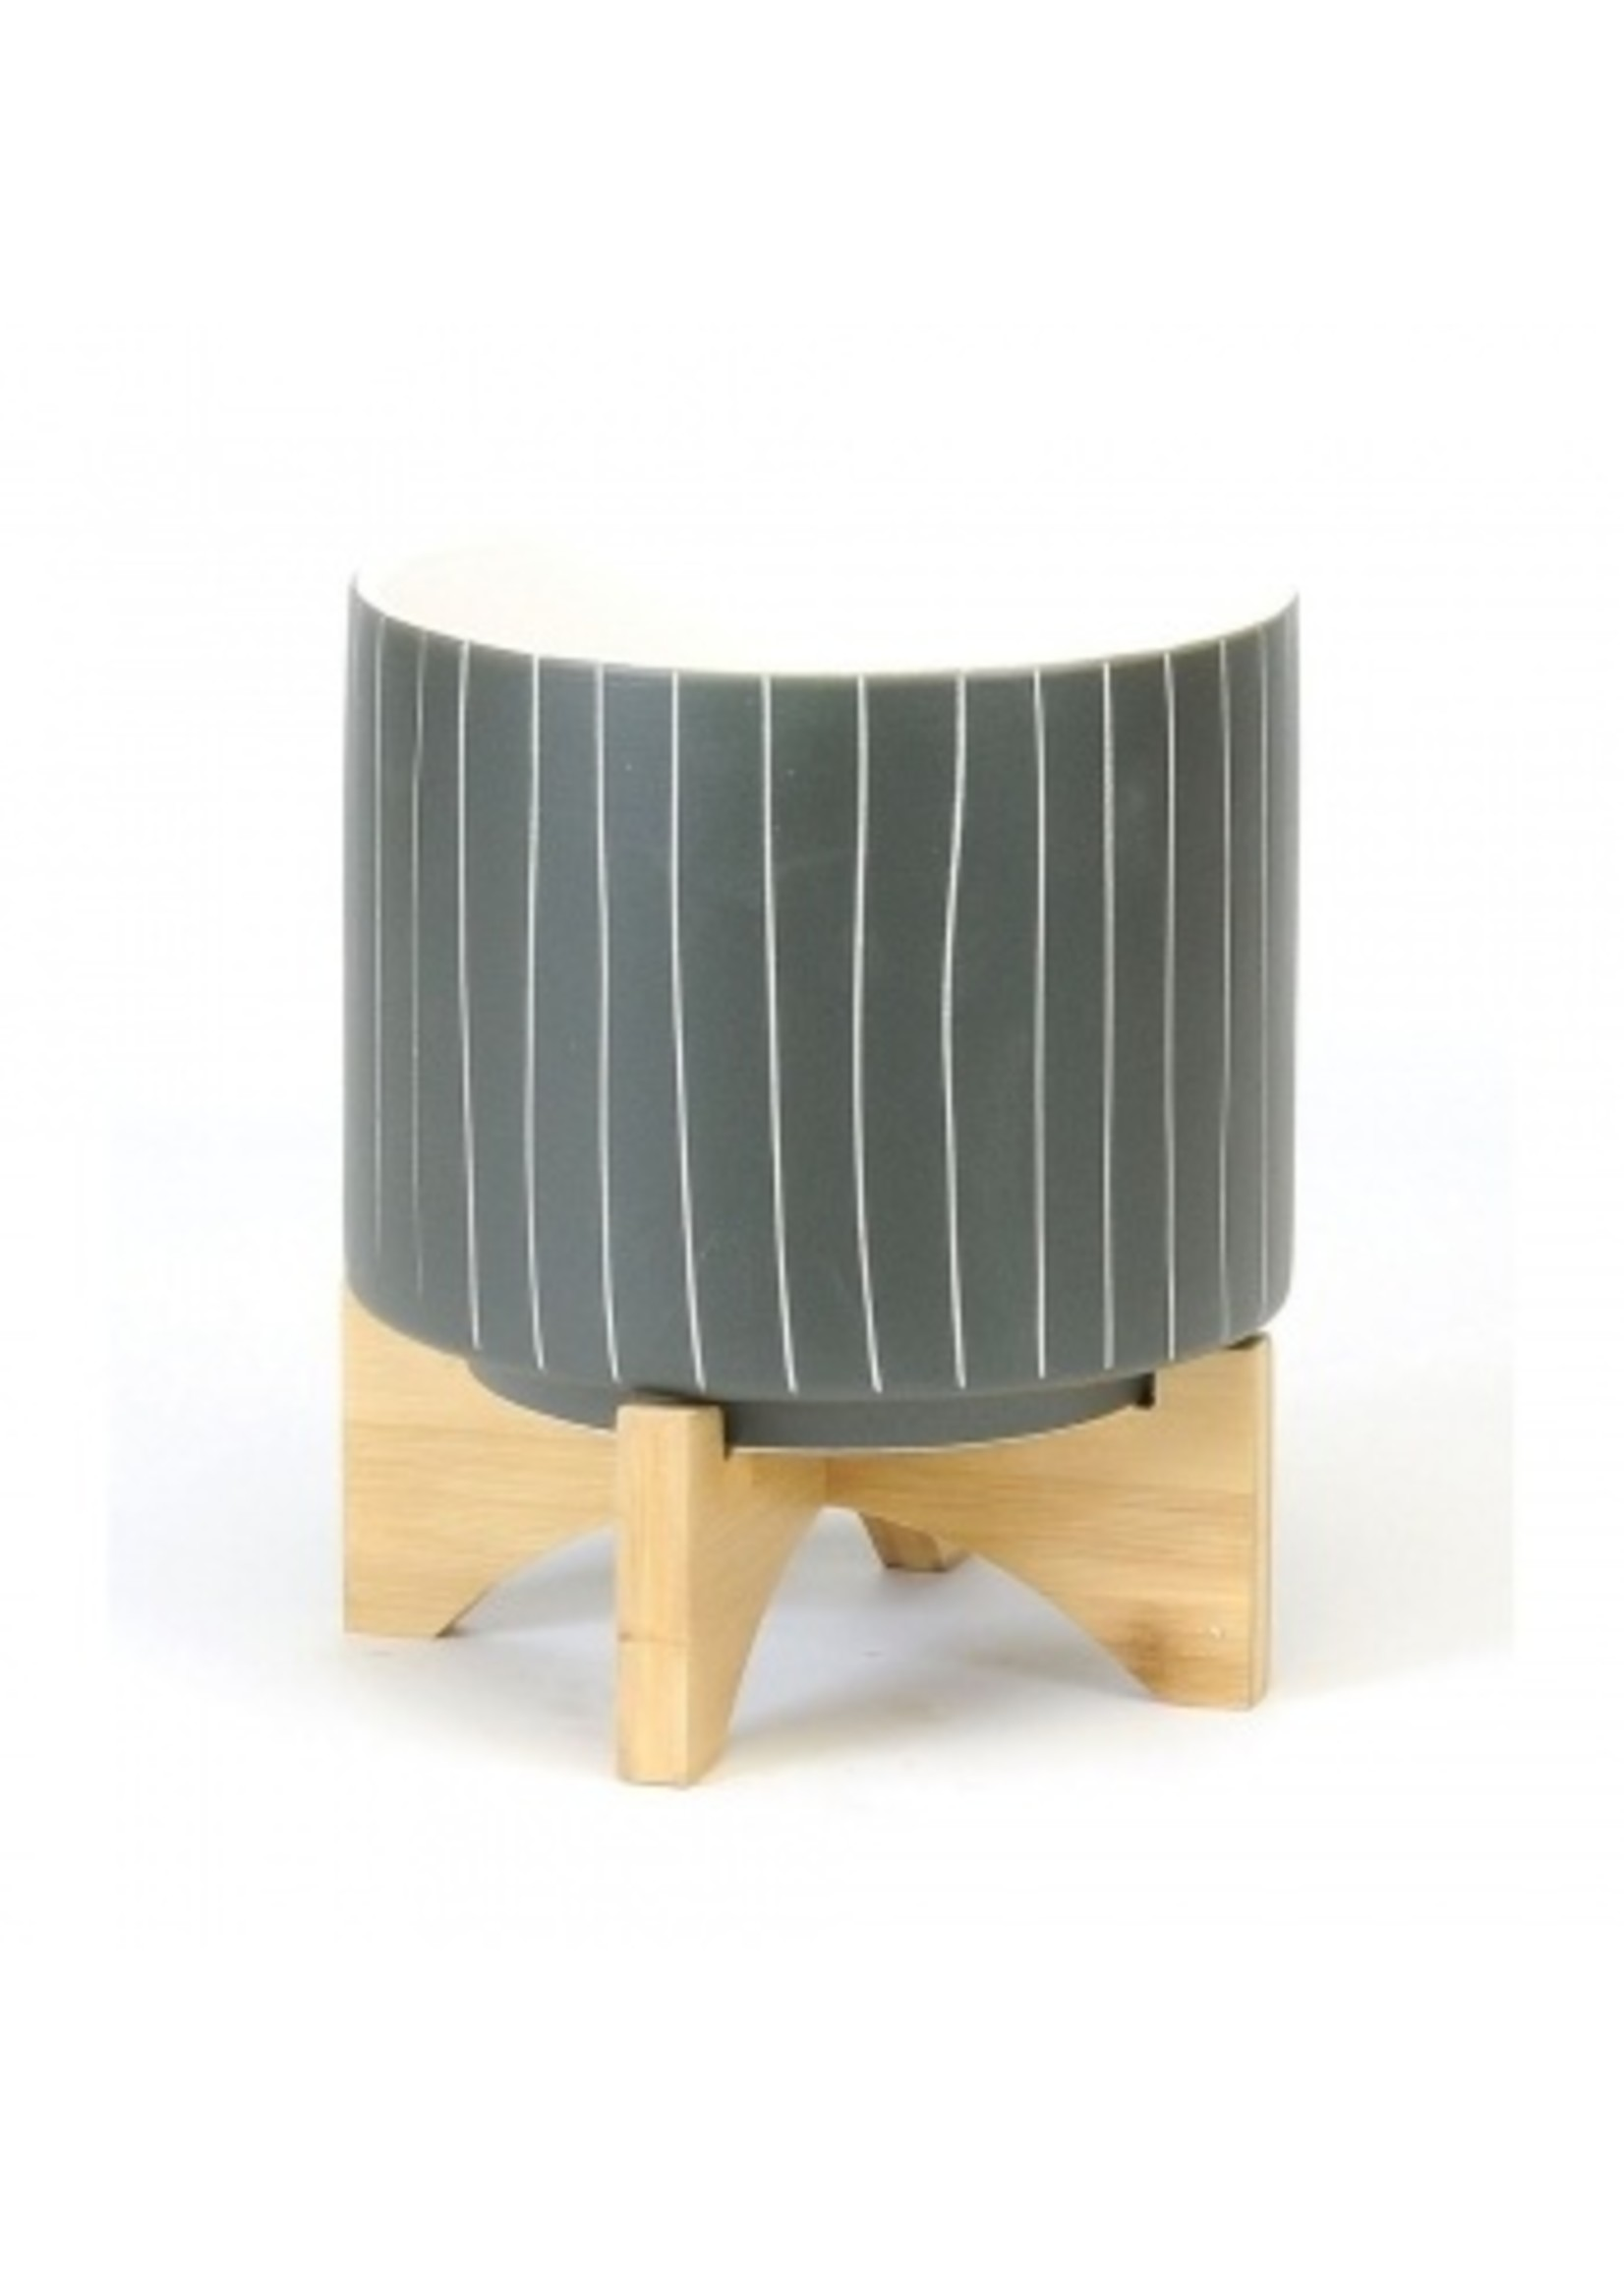 Large Dark Grey Striped Pot with Wooden Stand